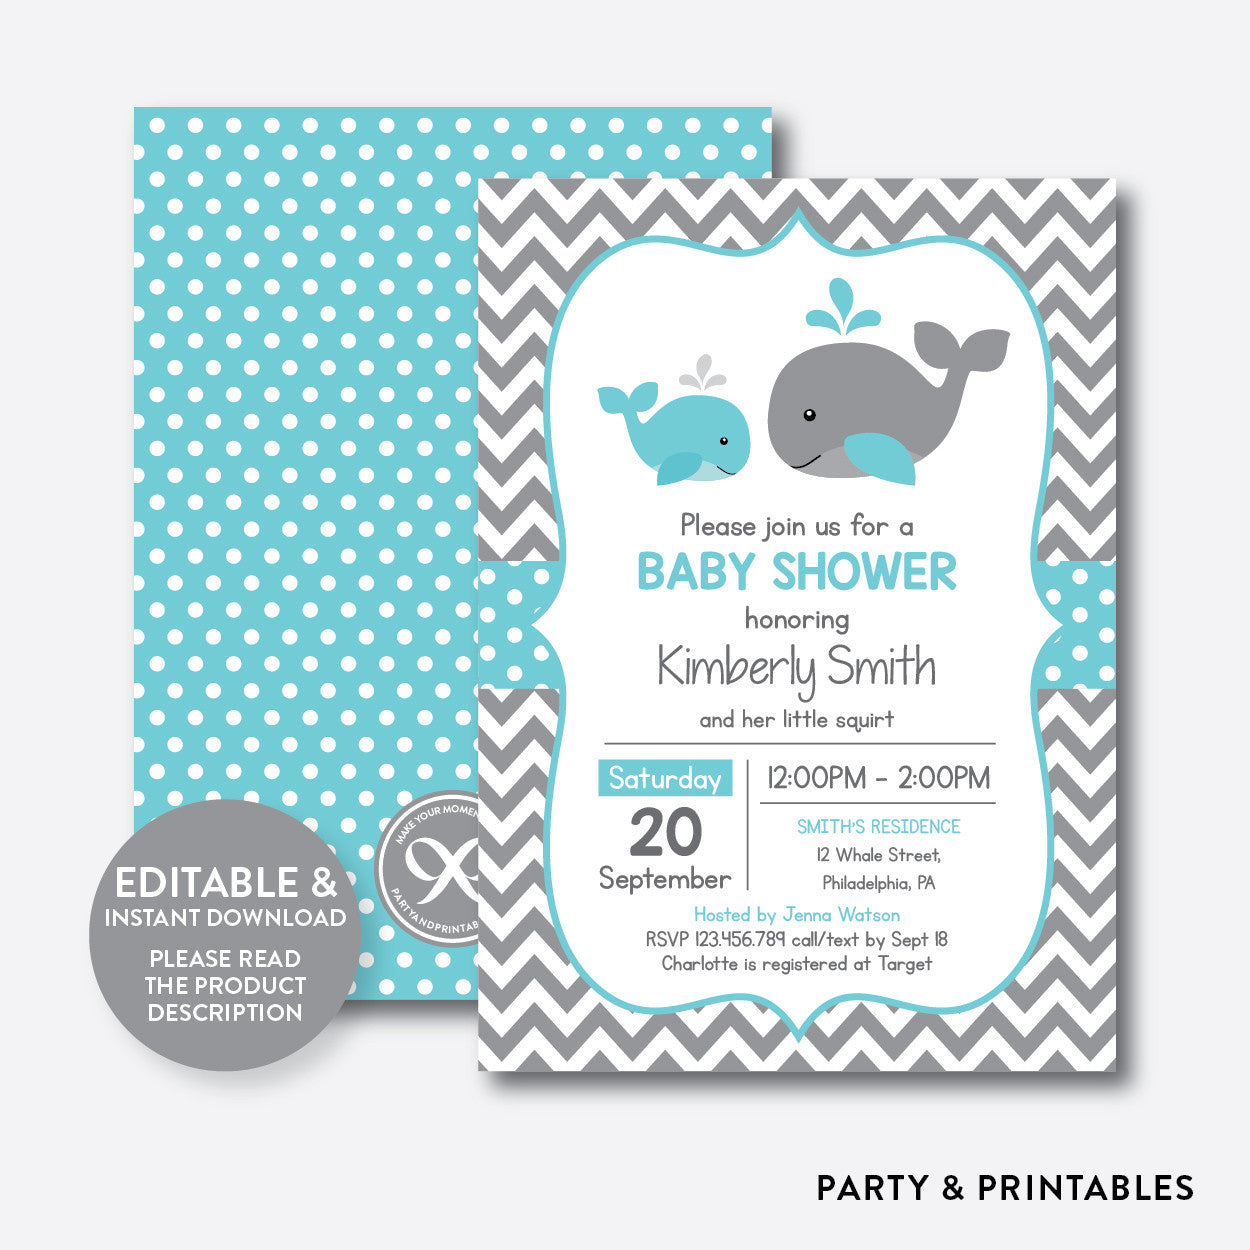 Whale Baby Shower Invitation Editable Instant Download Sbs 58